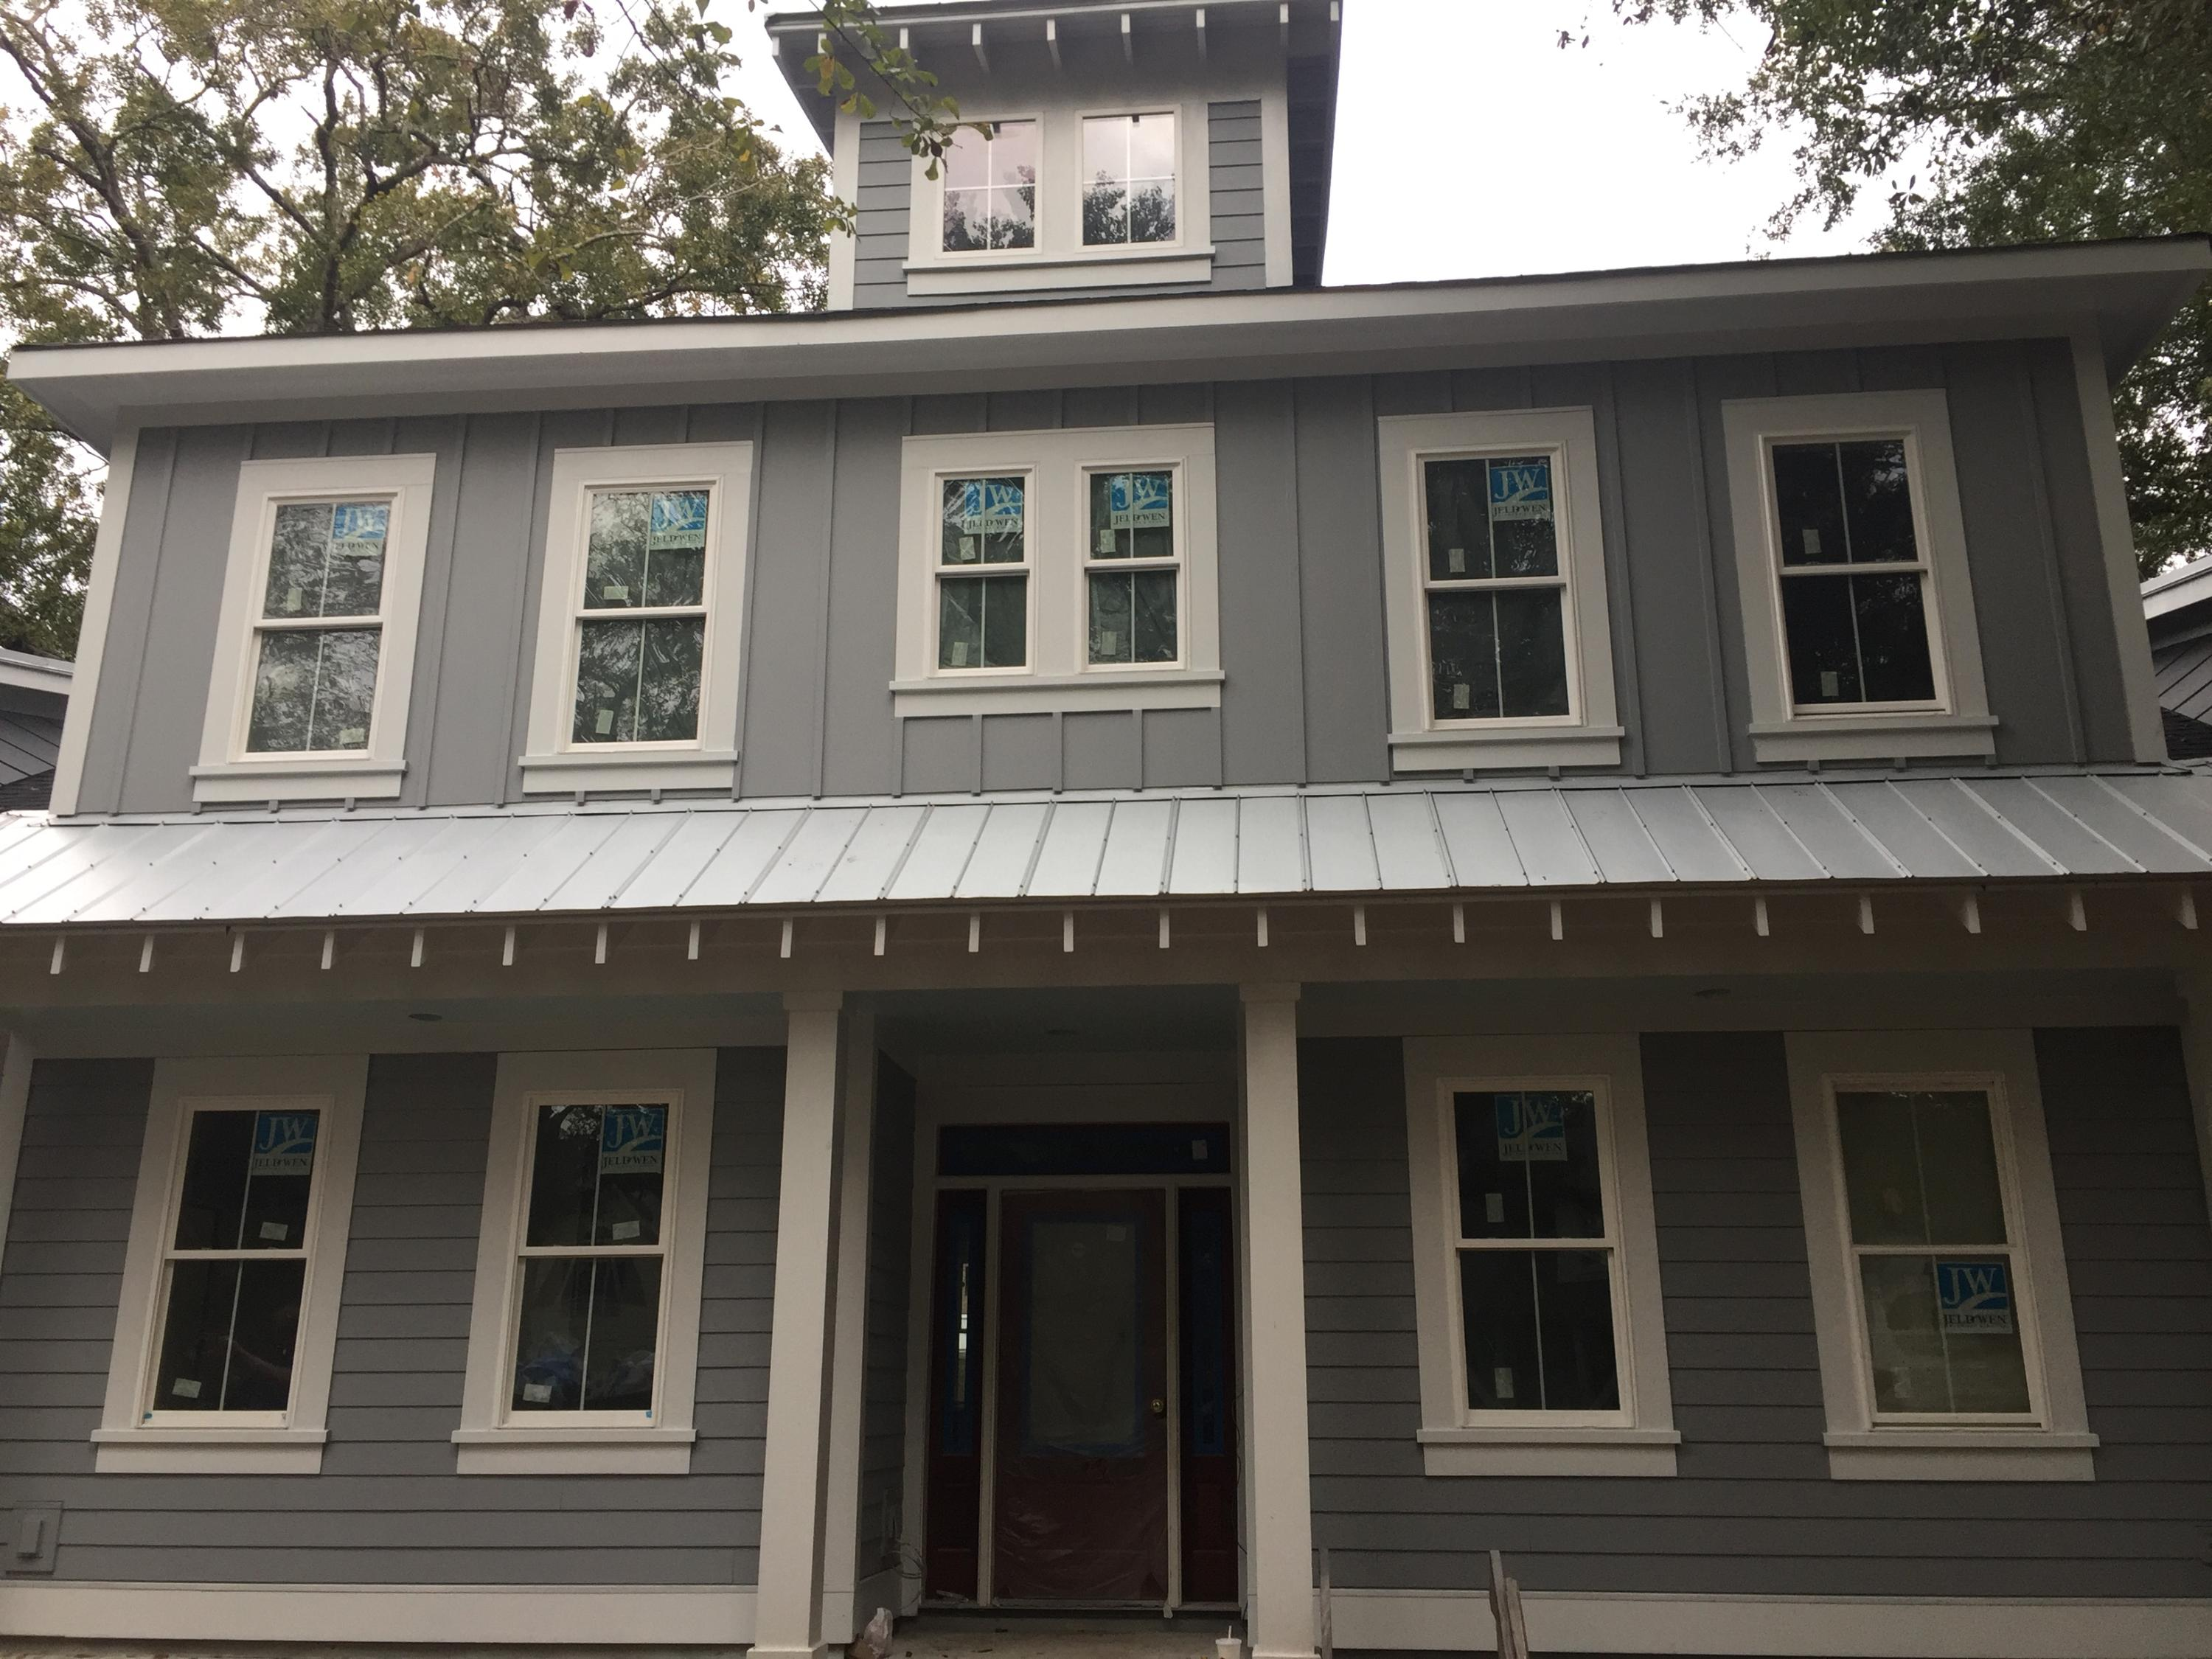 Riverland Terrace Homes For Sale - 2182 Parkway, Charleston, SC - 1